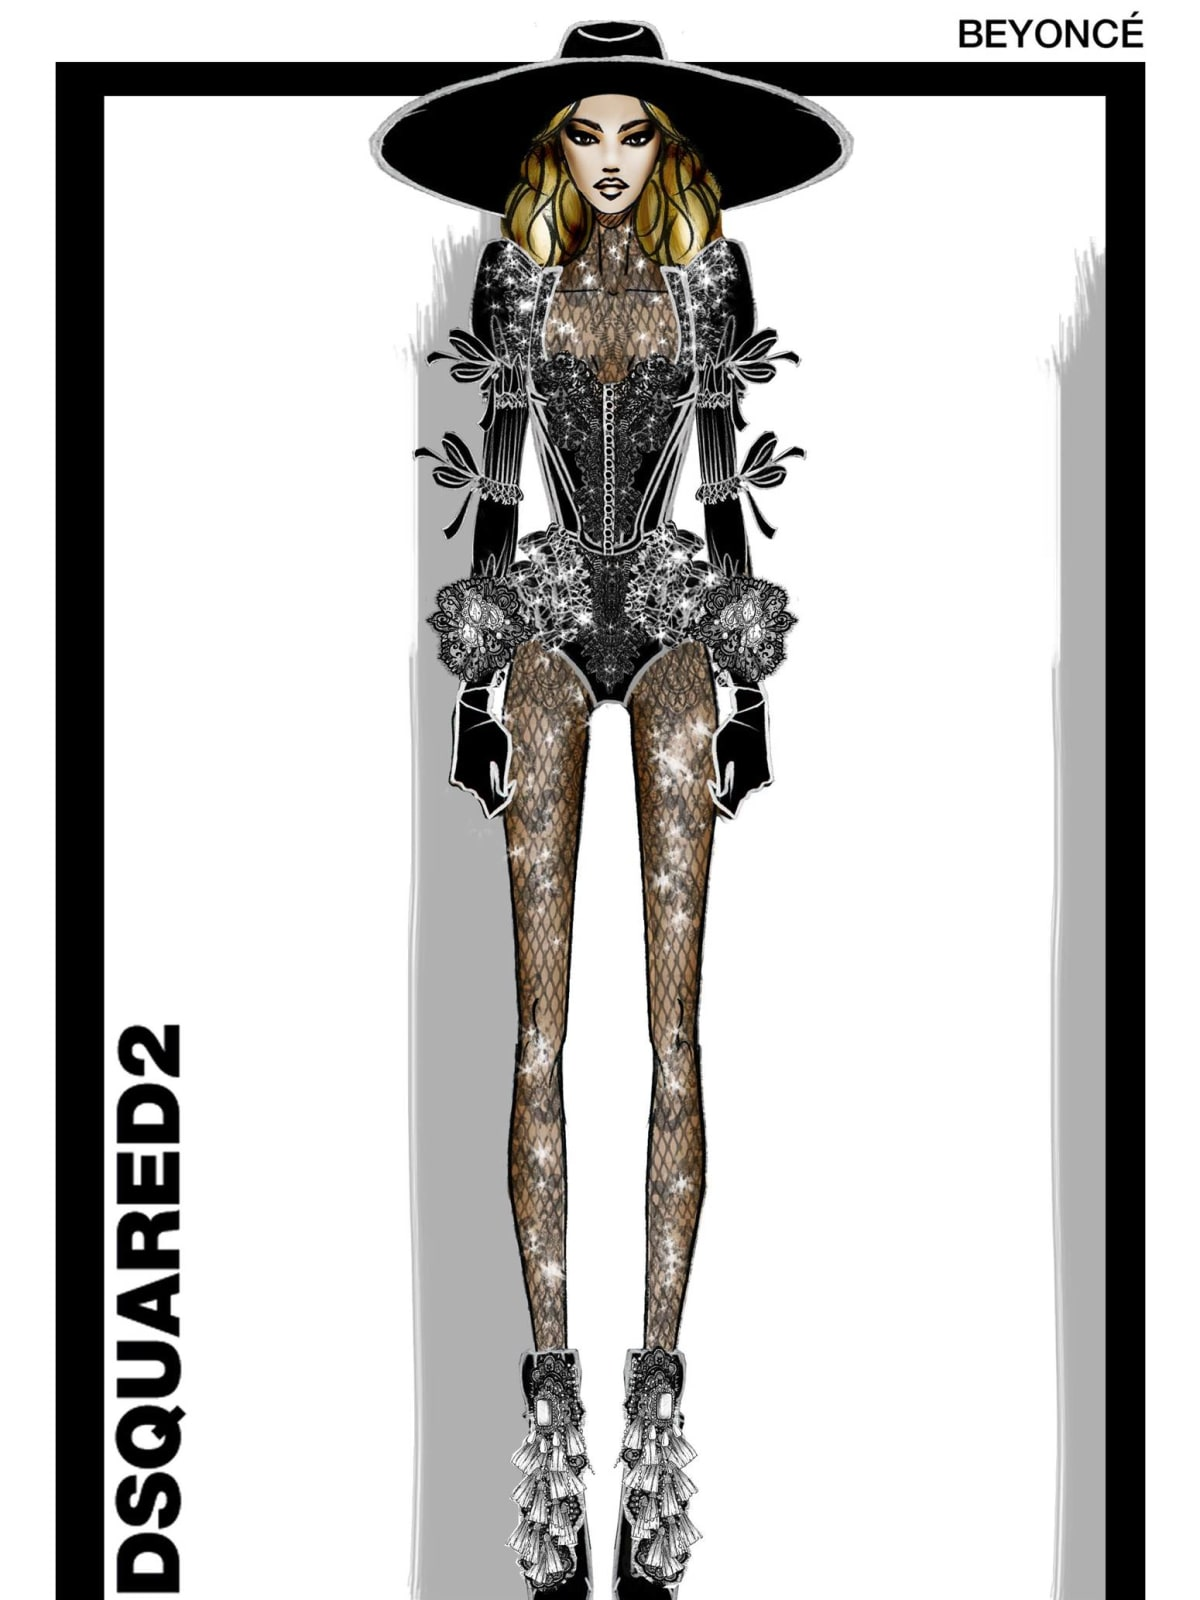 Beyonce DSquared2 look at concert